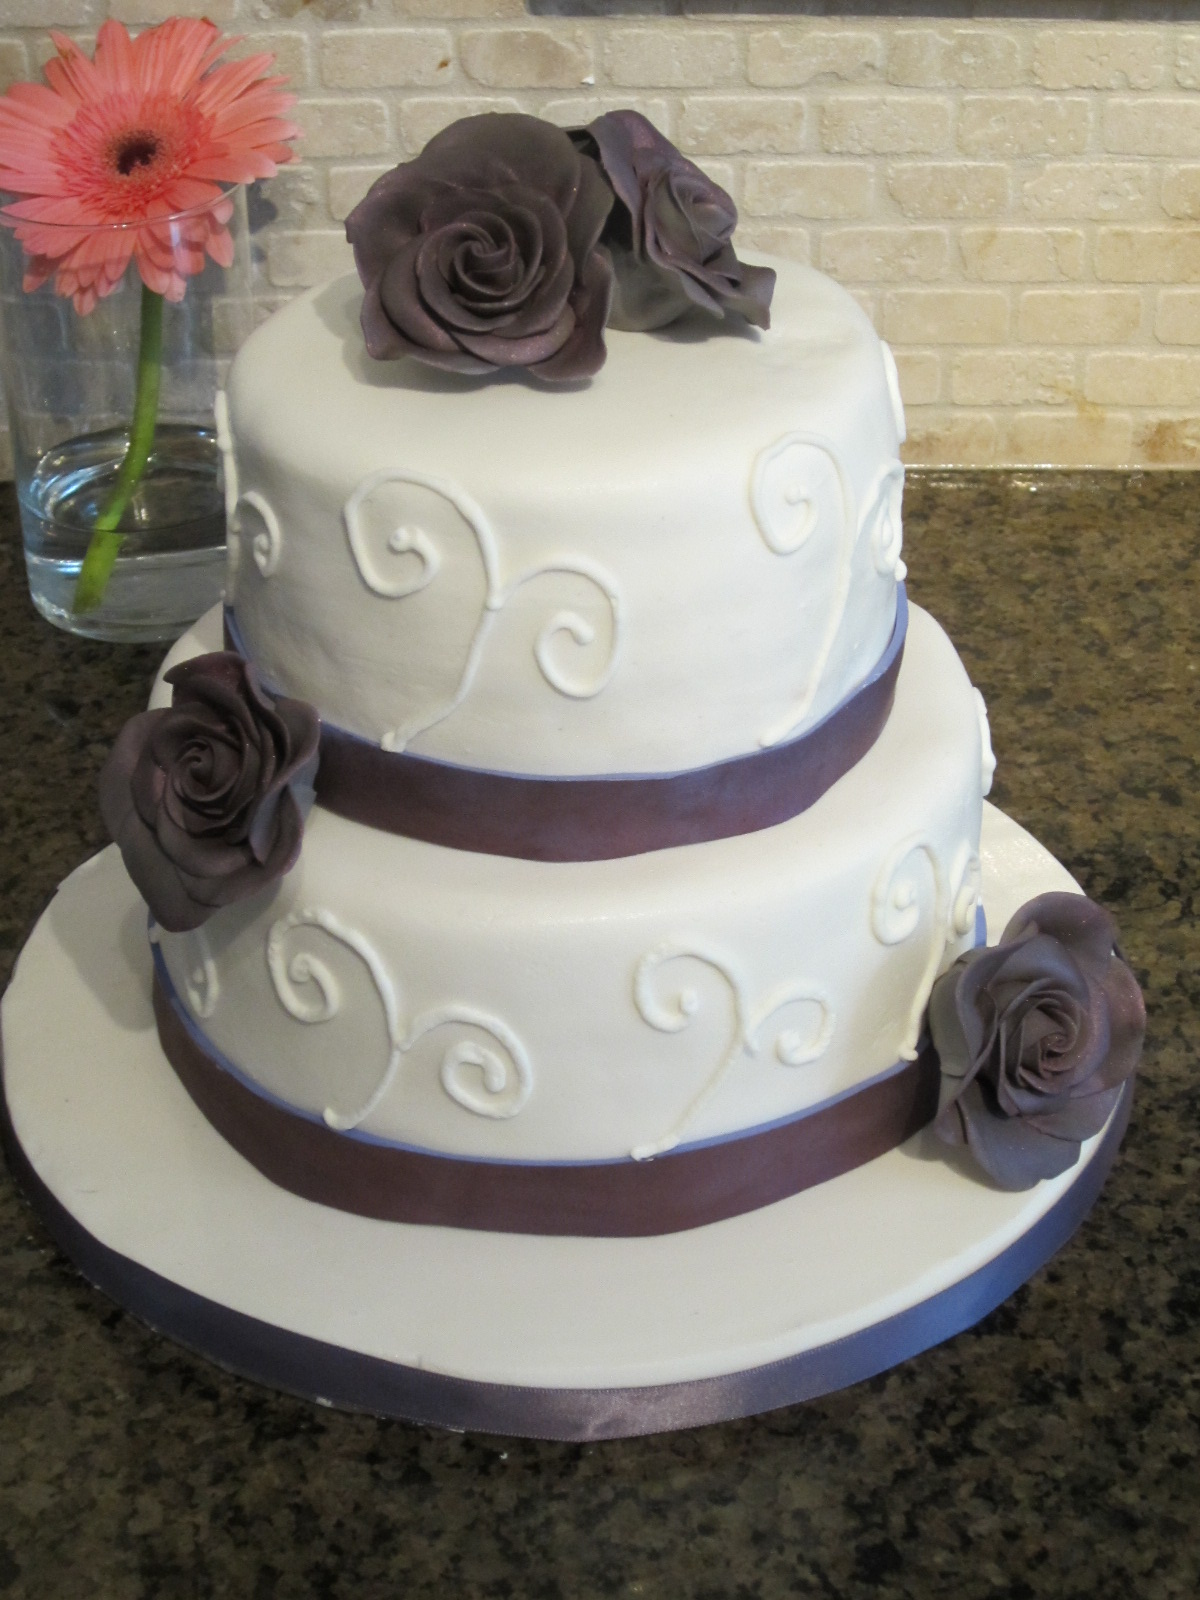 small wedding cakes with roses 9 small cakes with roses photo sleeping cake 20247